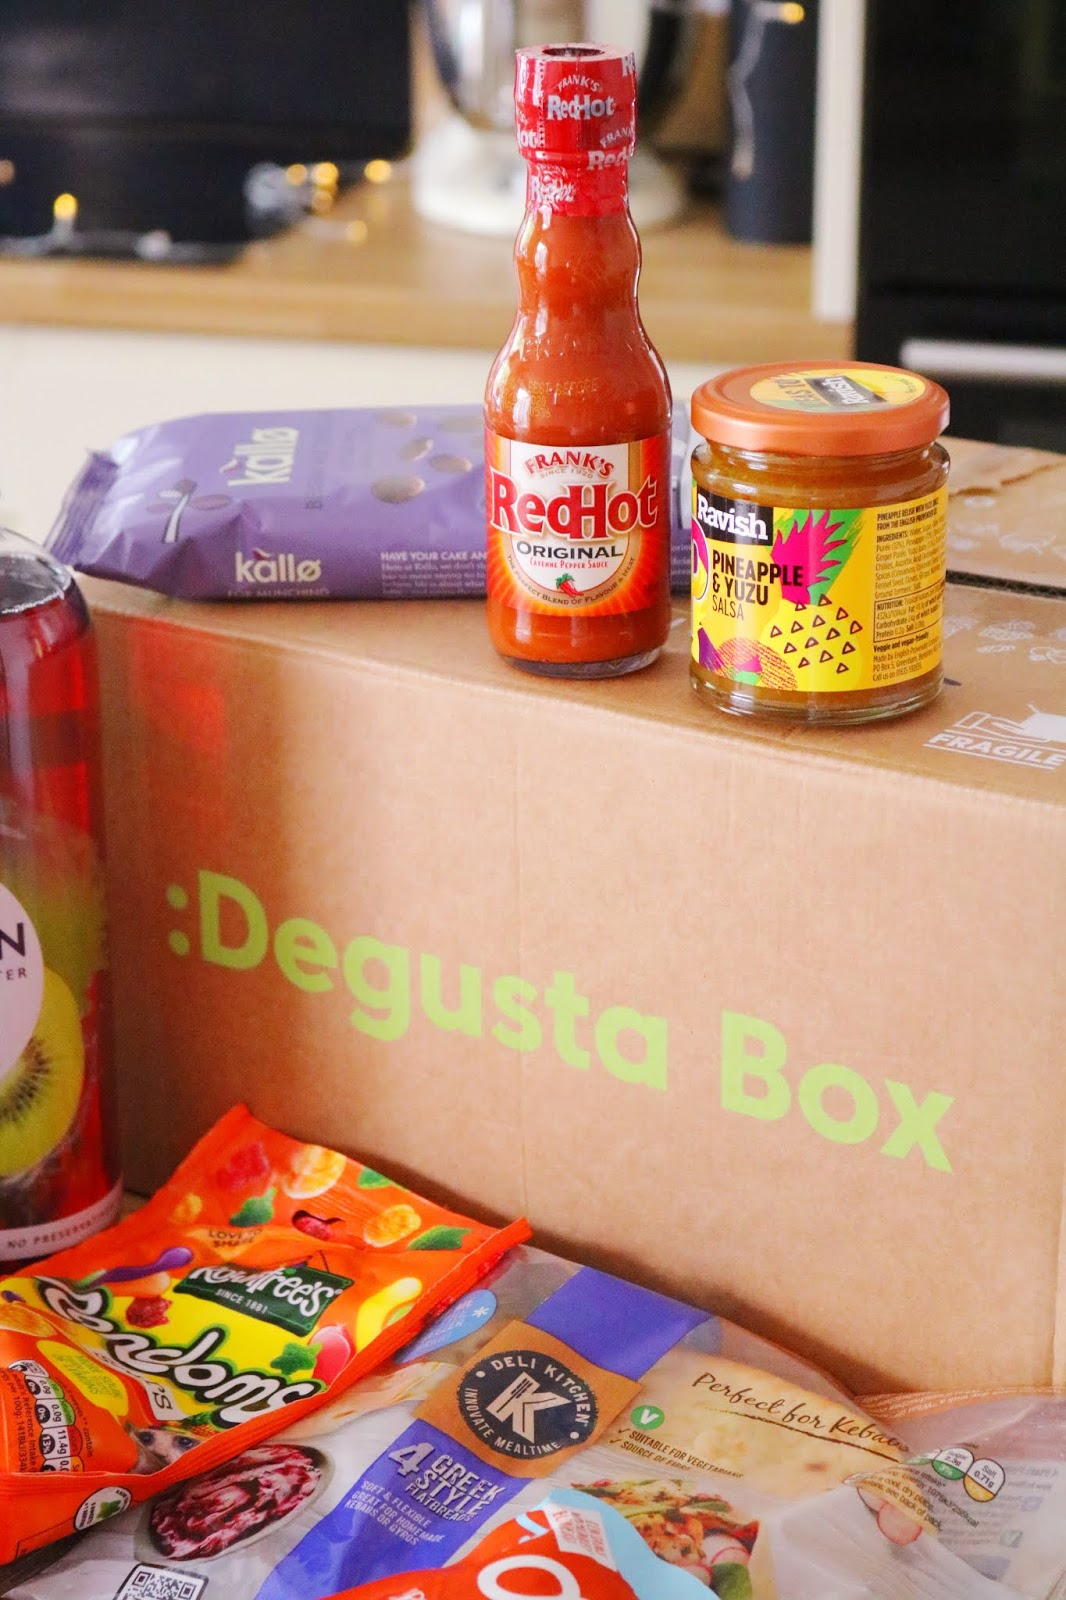 DegustaBox: July 2019